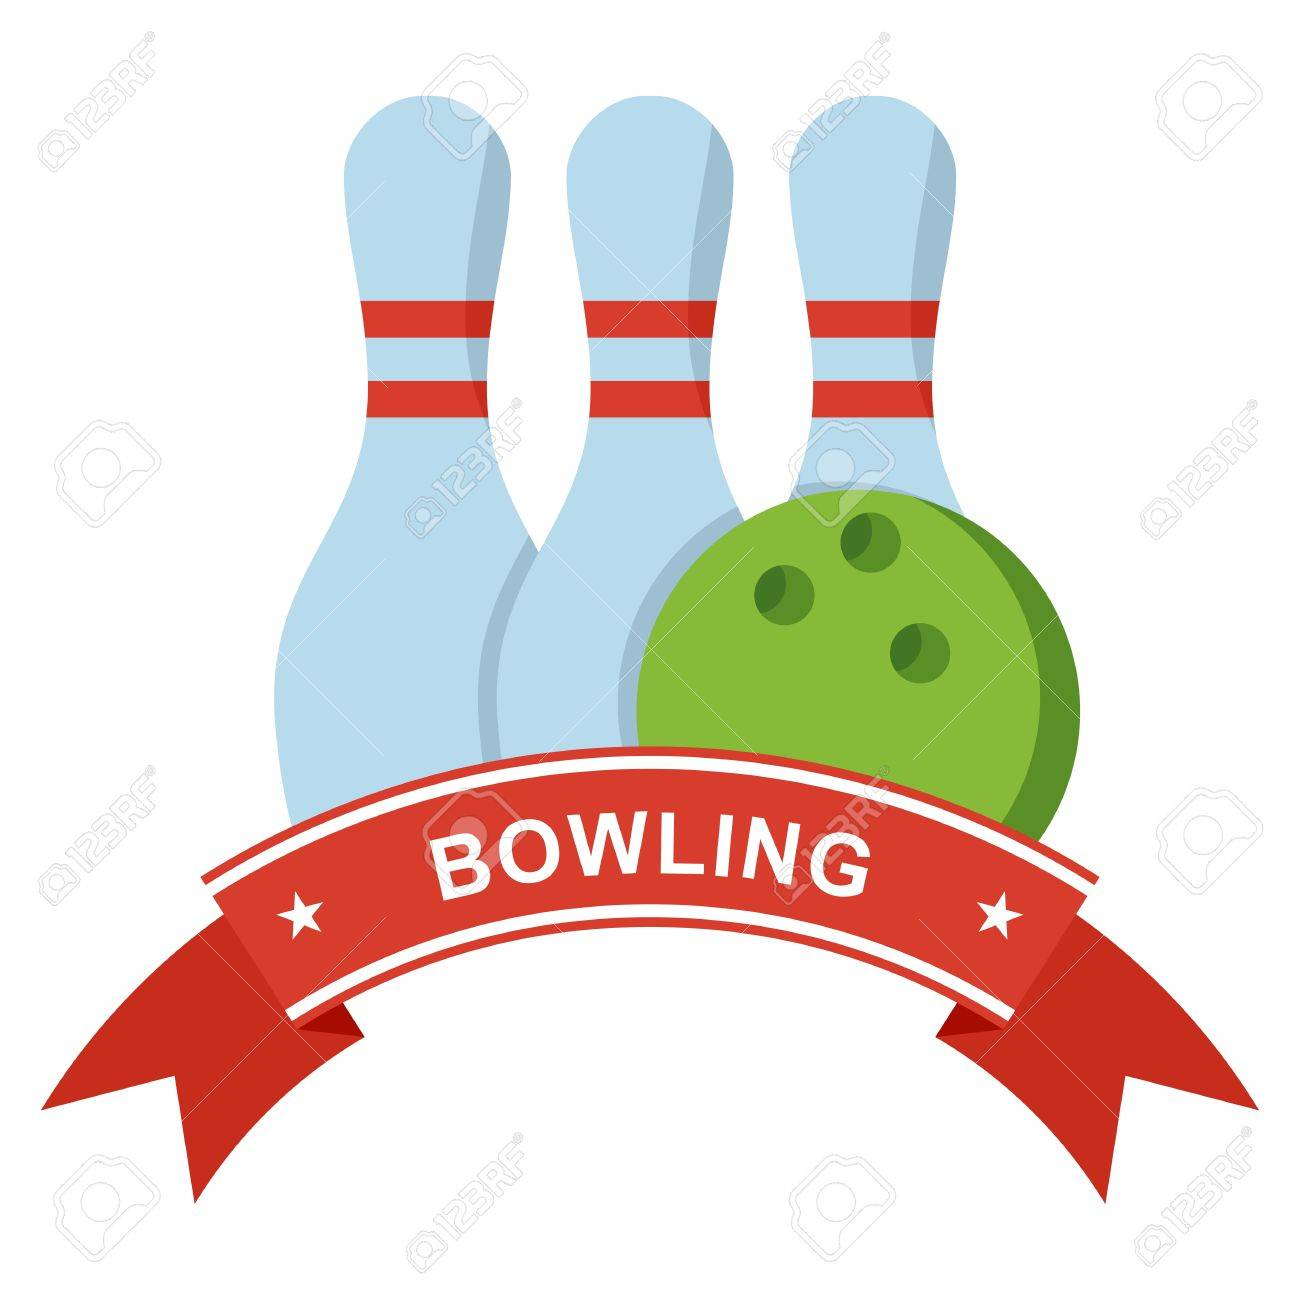 logo for the bowling tournament template for advertising brochures